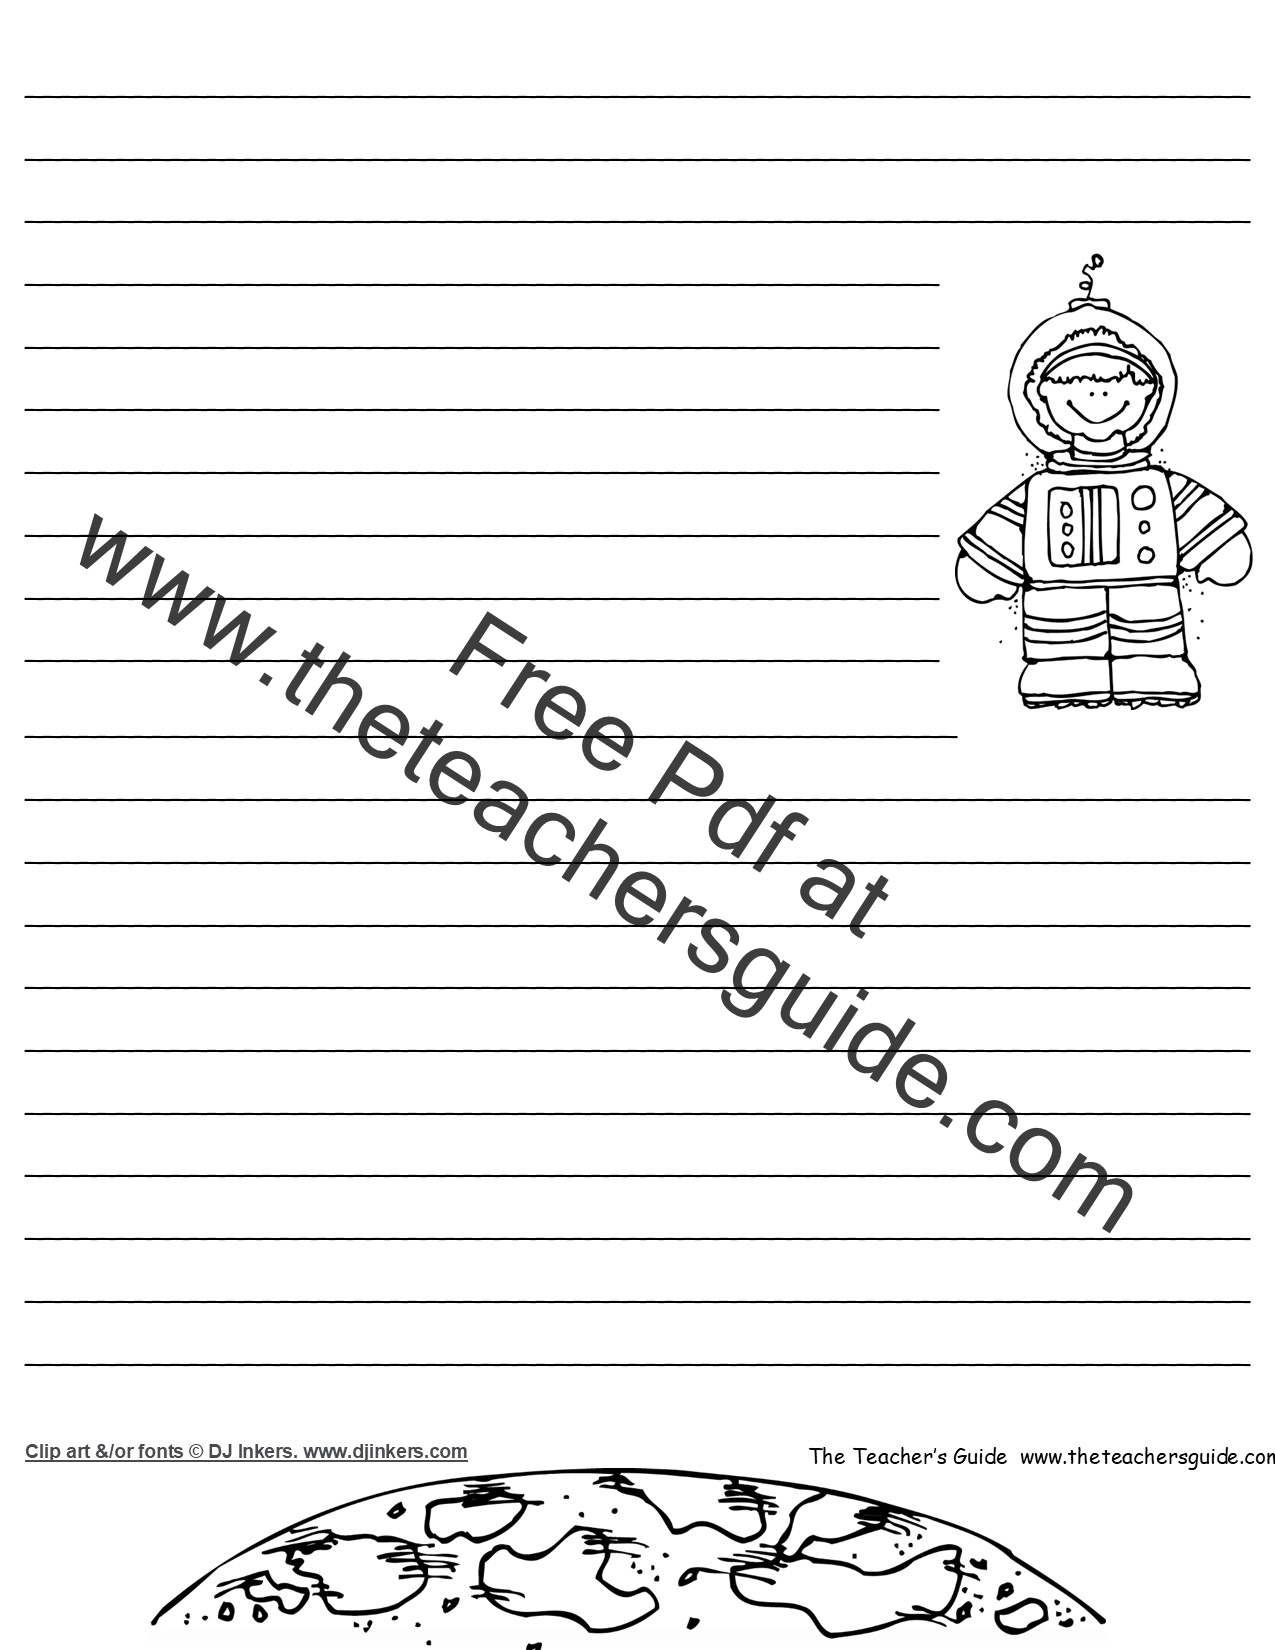 Printables 6th Grade Science Worksheets sixth grade science worksheets abitlikethis printouts